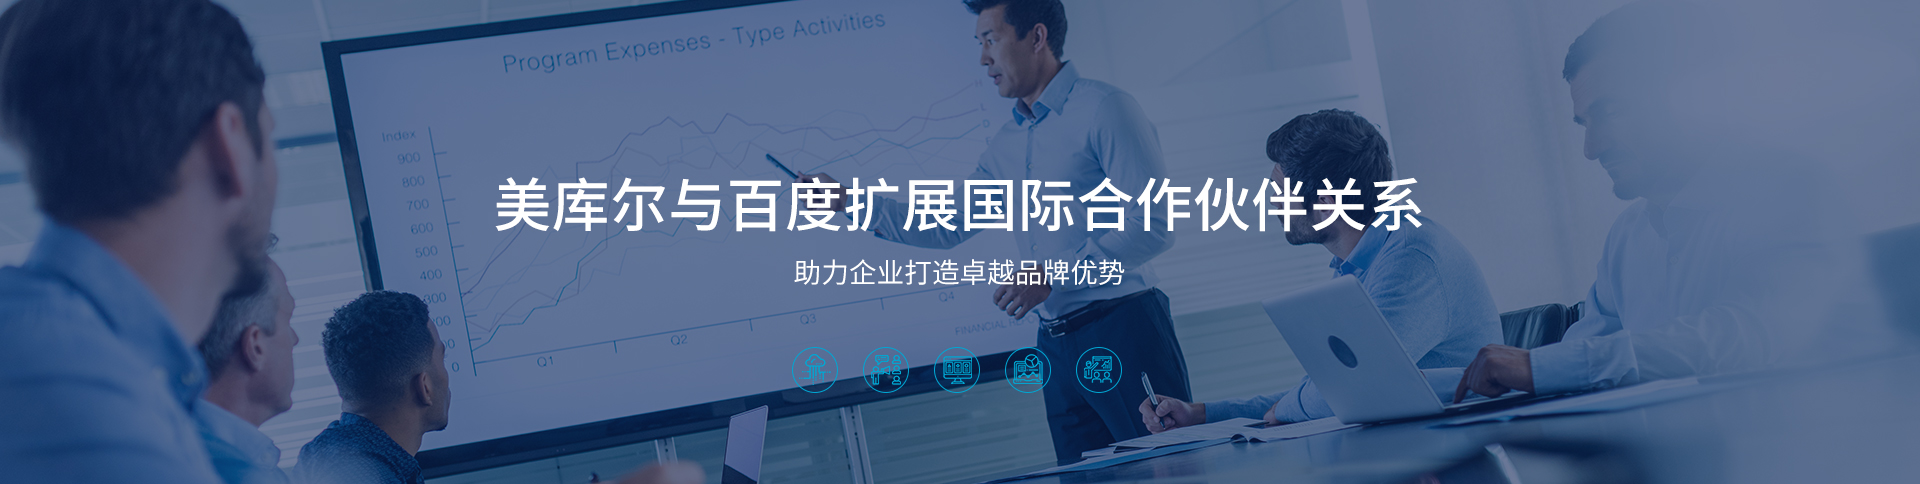 https://www.merklechina.cn/node/58